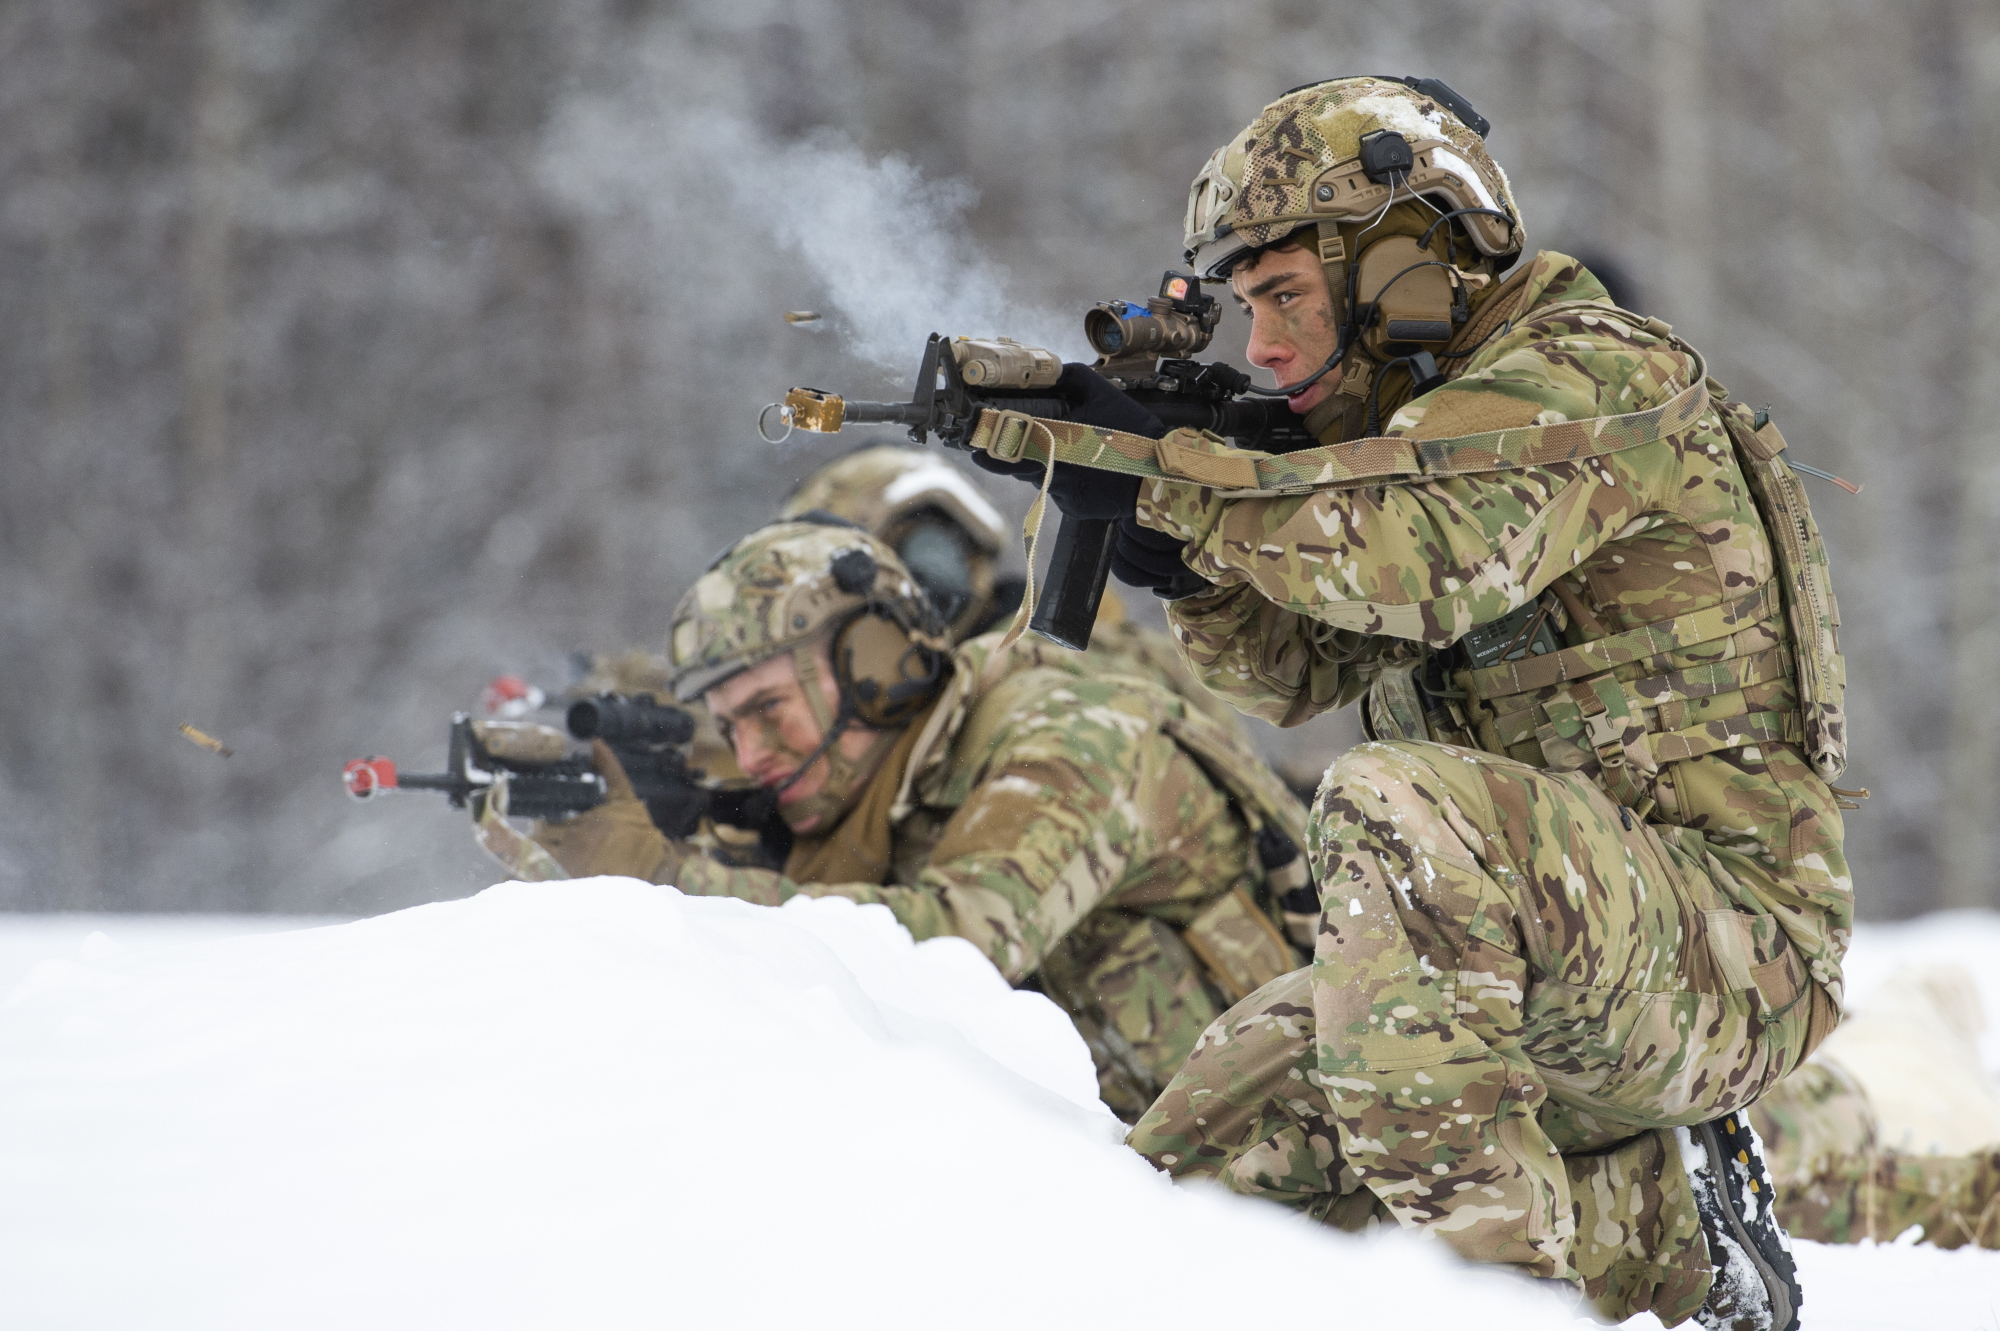 Airman 1st Class Nathan Ortiz, right, and fellow tactical air control party apprentices engage simulated opposing forces while conducting small-unit training at Joint Base Elmendorf-Richardson, Alaska, Feb. 12, 2020. (Alejandro Peña/Air Force)